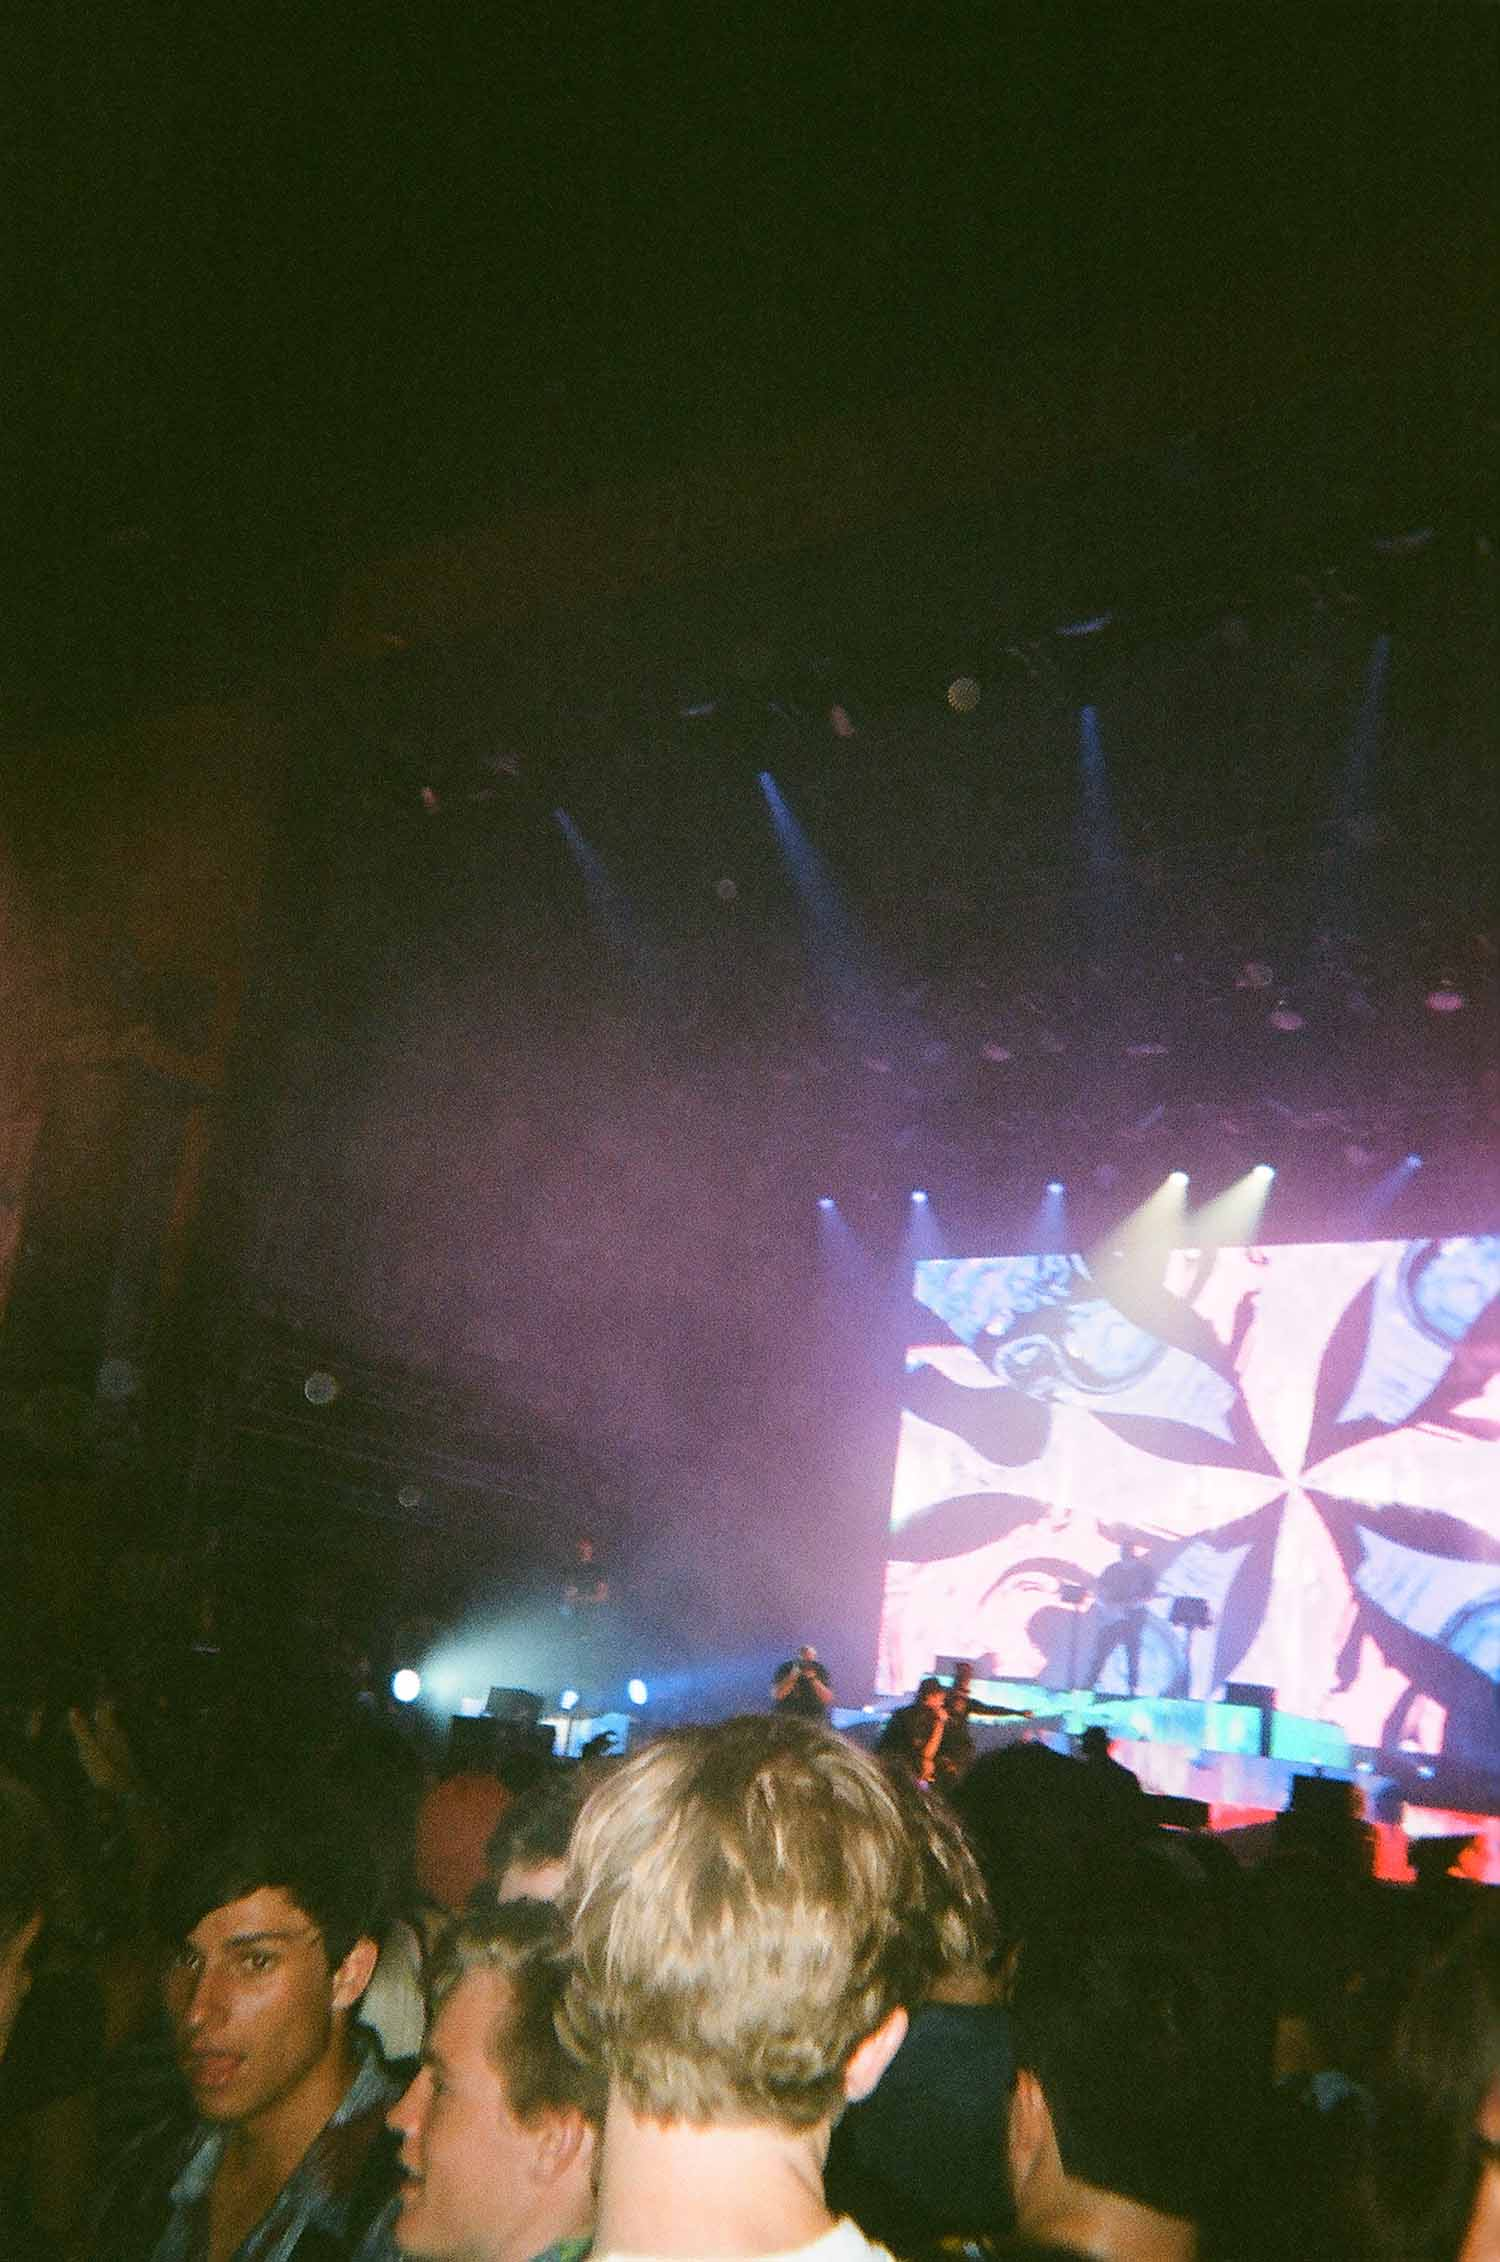 Musicians performing on a stage at ACL at night.